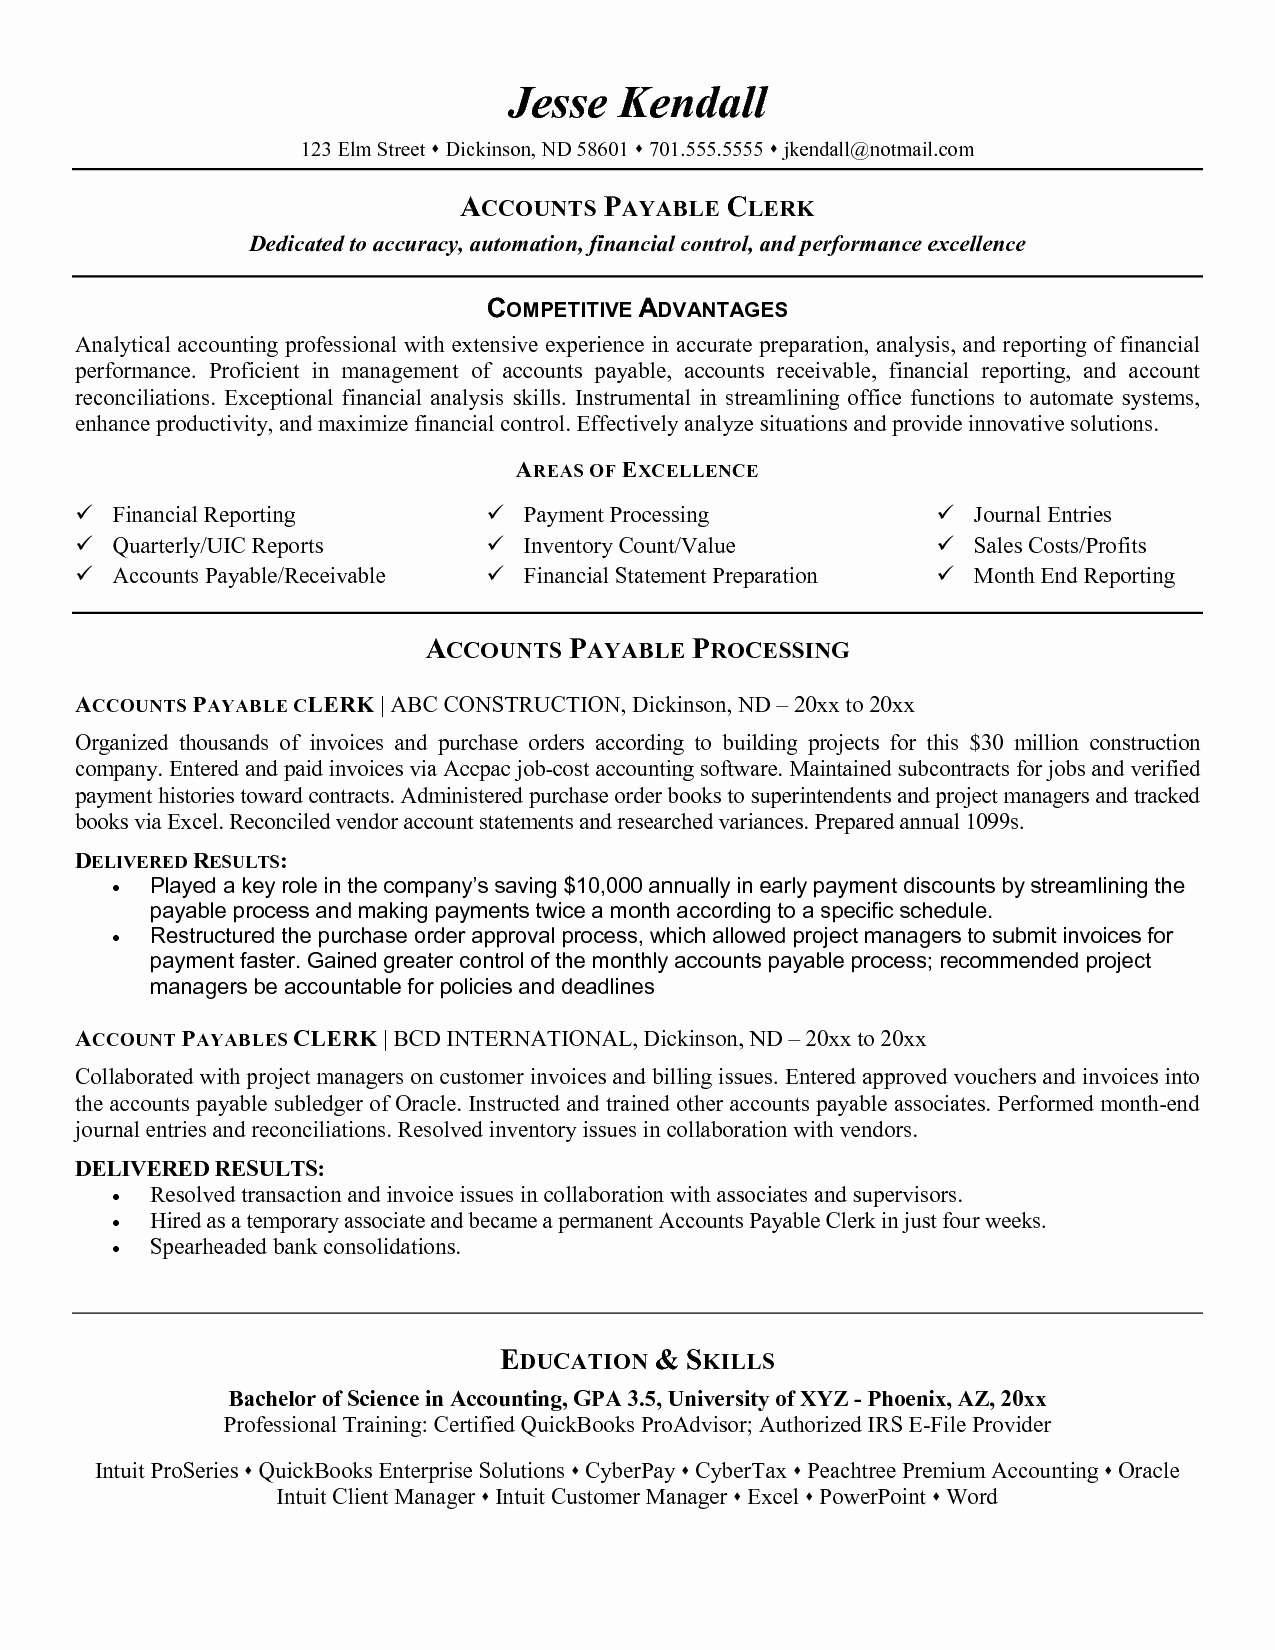 50 Great Accounts Receivable Resume Objective by Design